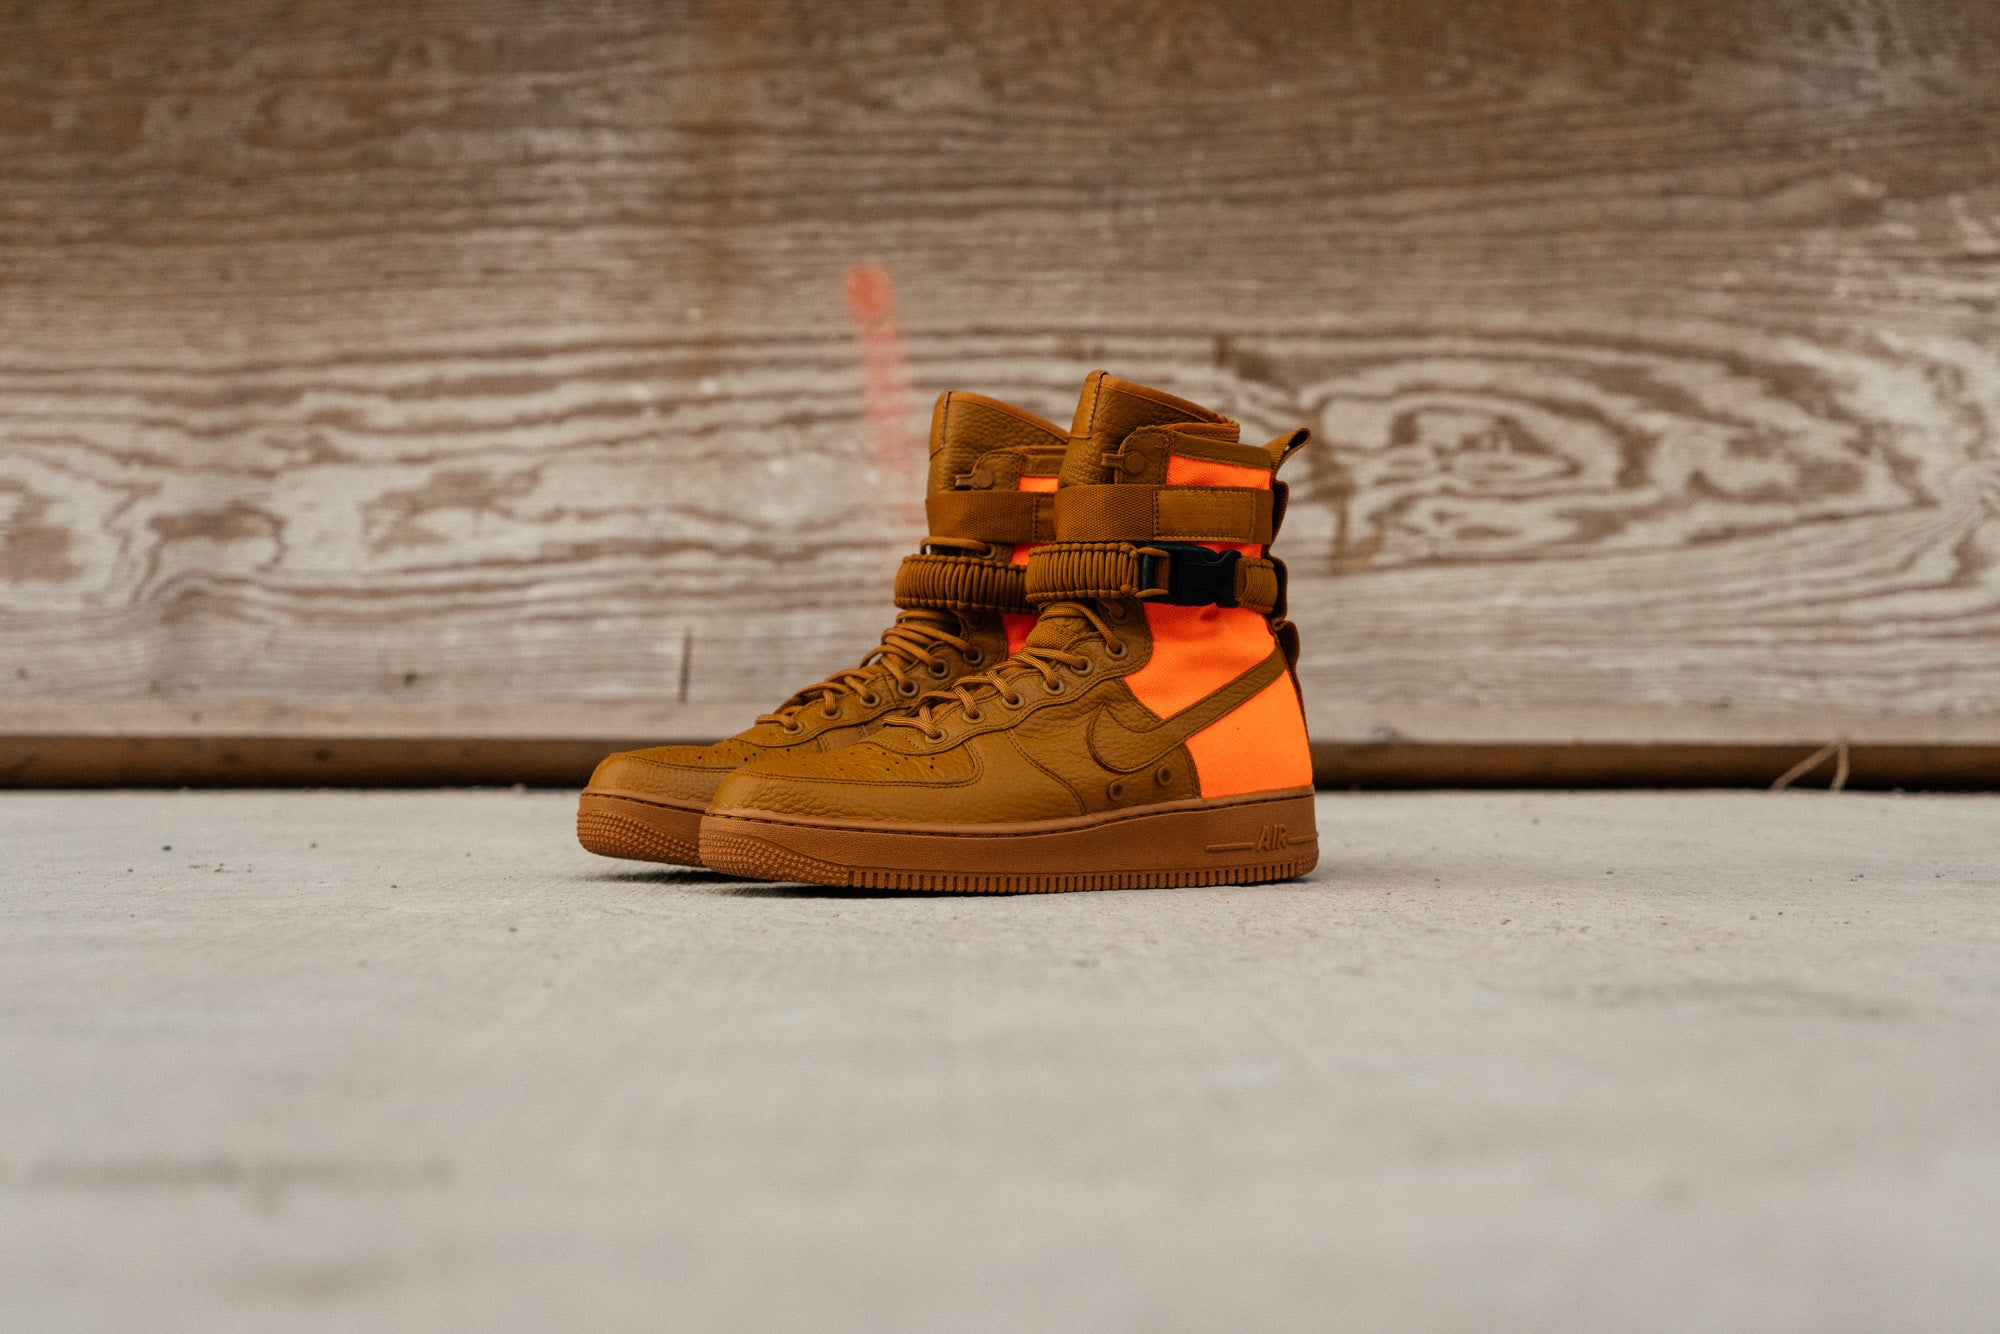 Nike Special Field Air Force 1 Hi - Ochre/Orange at Notre